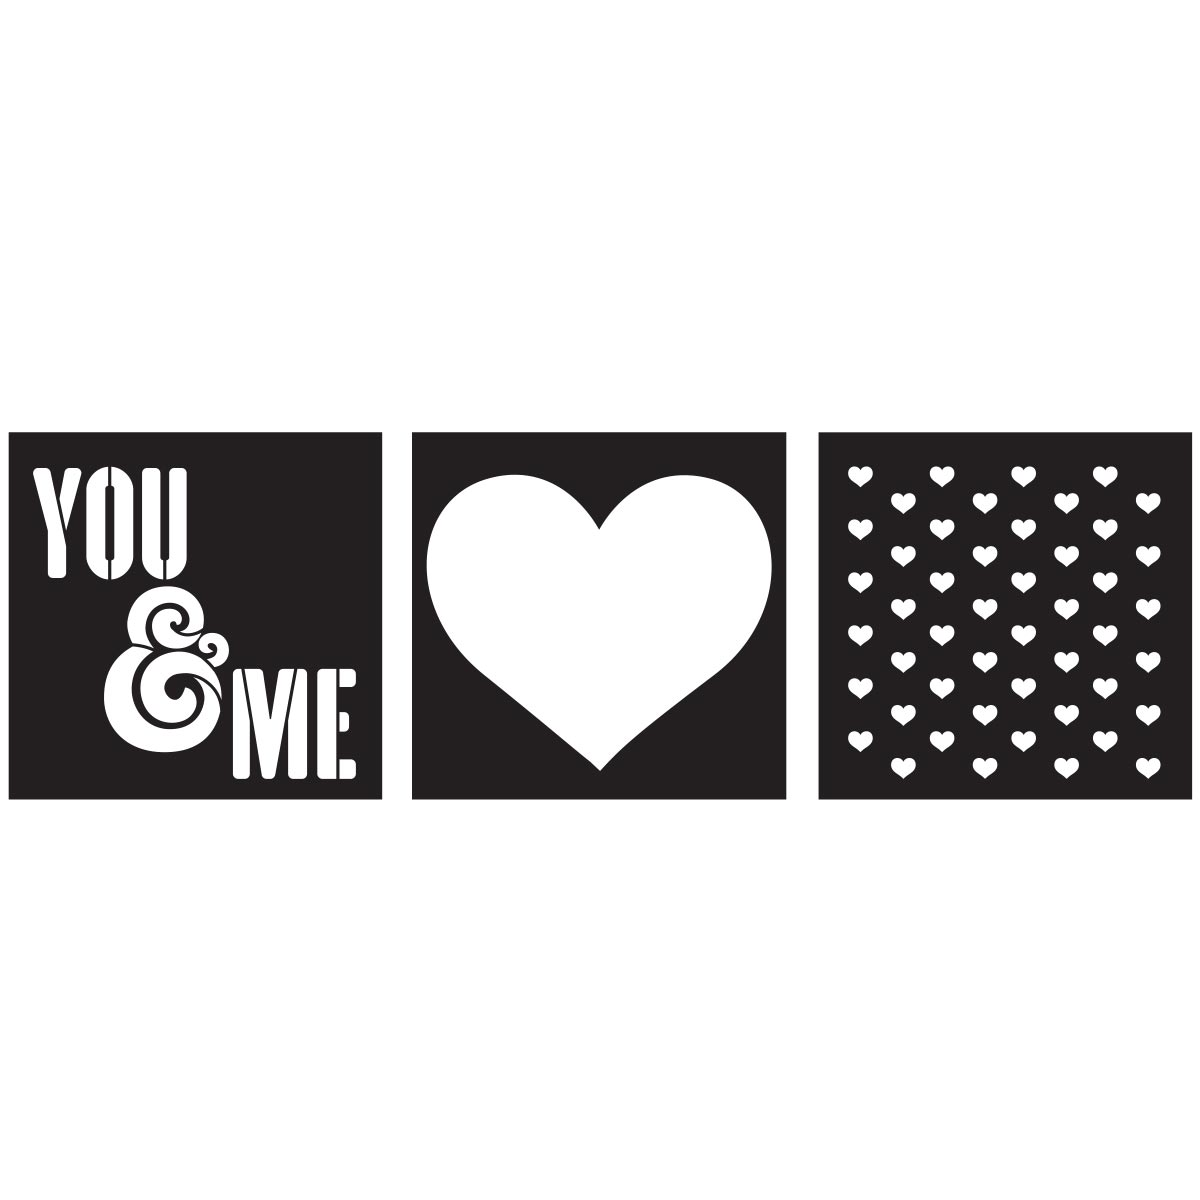 FolkArt ® Craft Stencils - Value Packs - You & Me - 25618